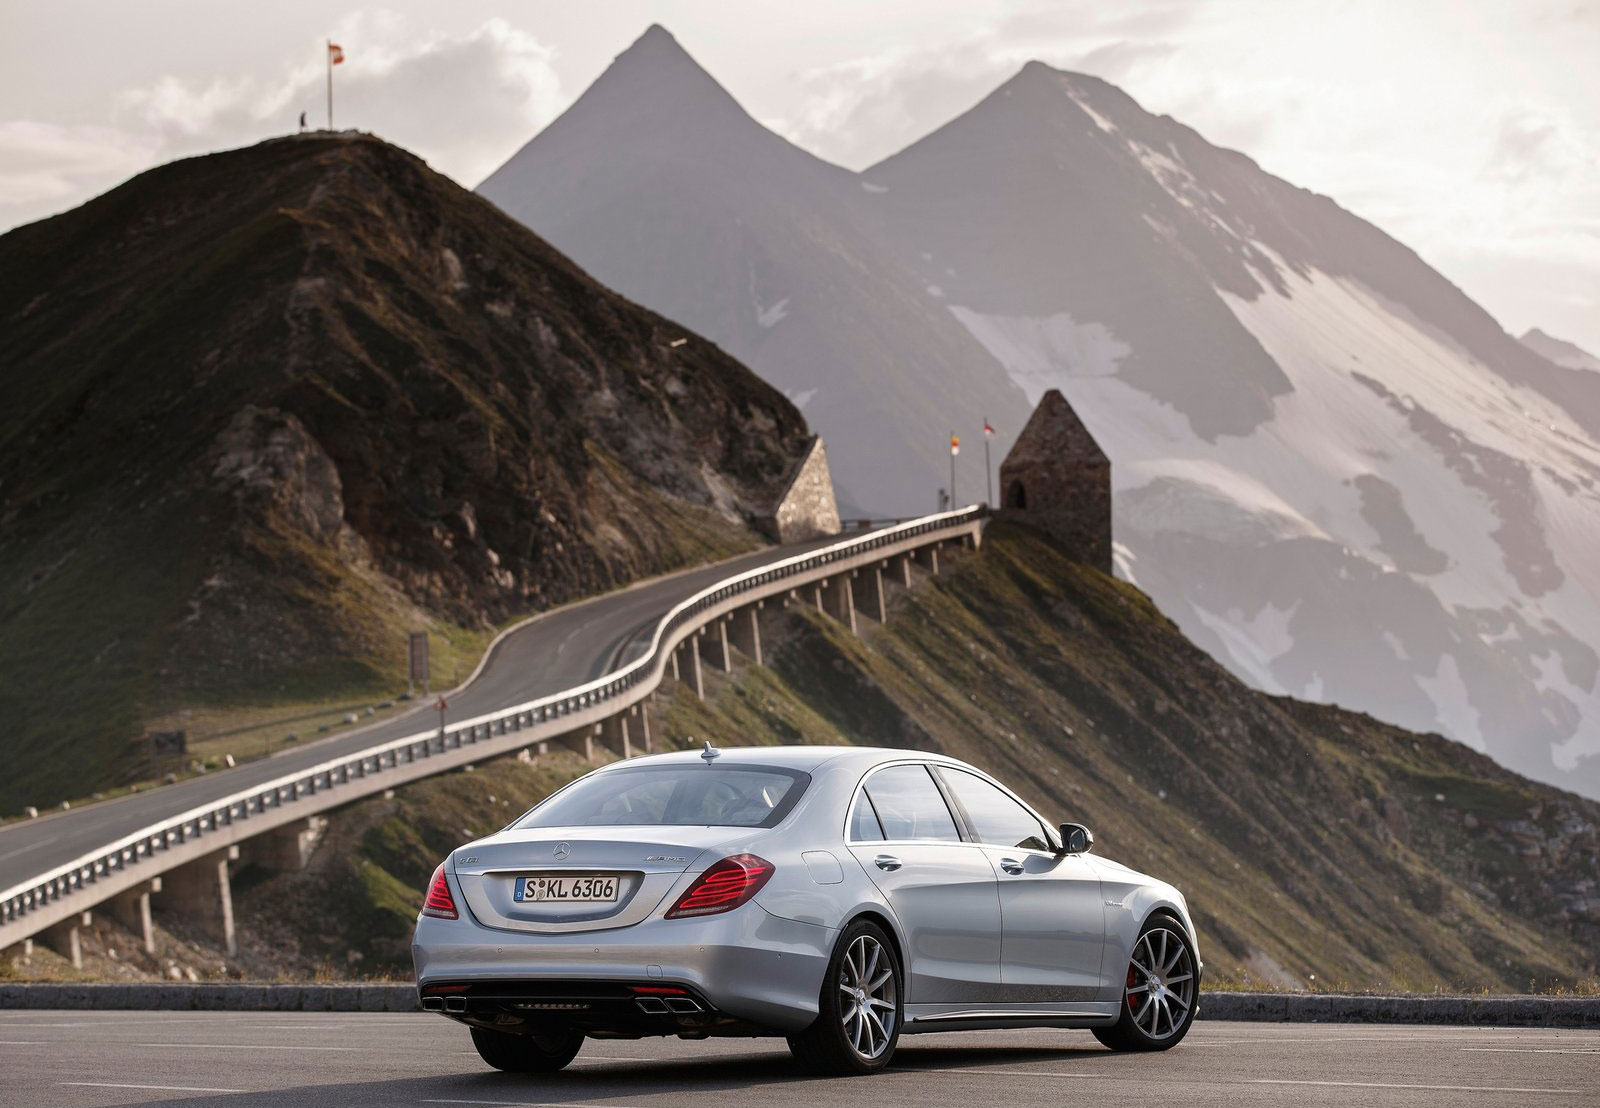 Mercedes benz s 63 amg like a boss in austria image 201925 for Mercedes benz austria